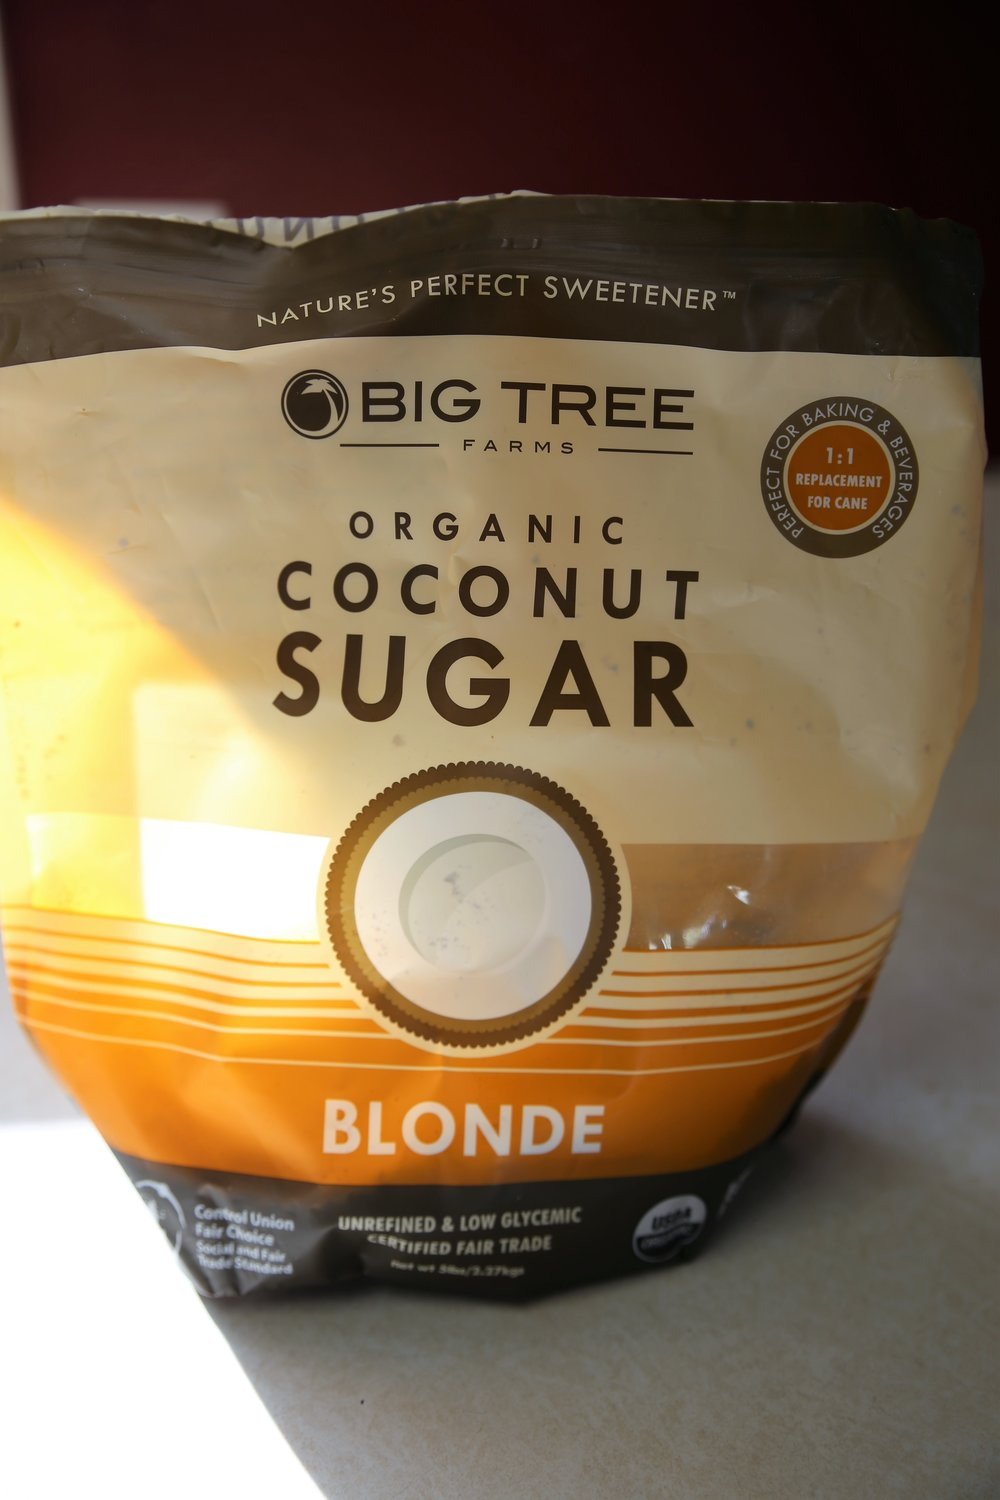 1:1 for regular sugar with hint of molasses taste - So far I've really only found that coconut sugar does not taste good in lemonade. For all of my baking needs, this is my go to sugar.Where to buy:Amazon.com, Whole Foods, Costco, Trader Joes, Fresh Thyme and many other local stores